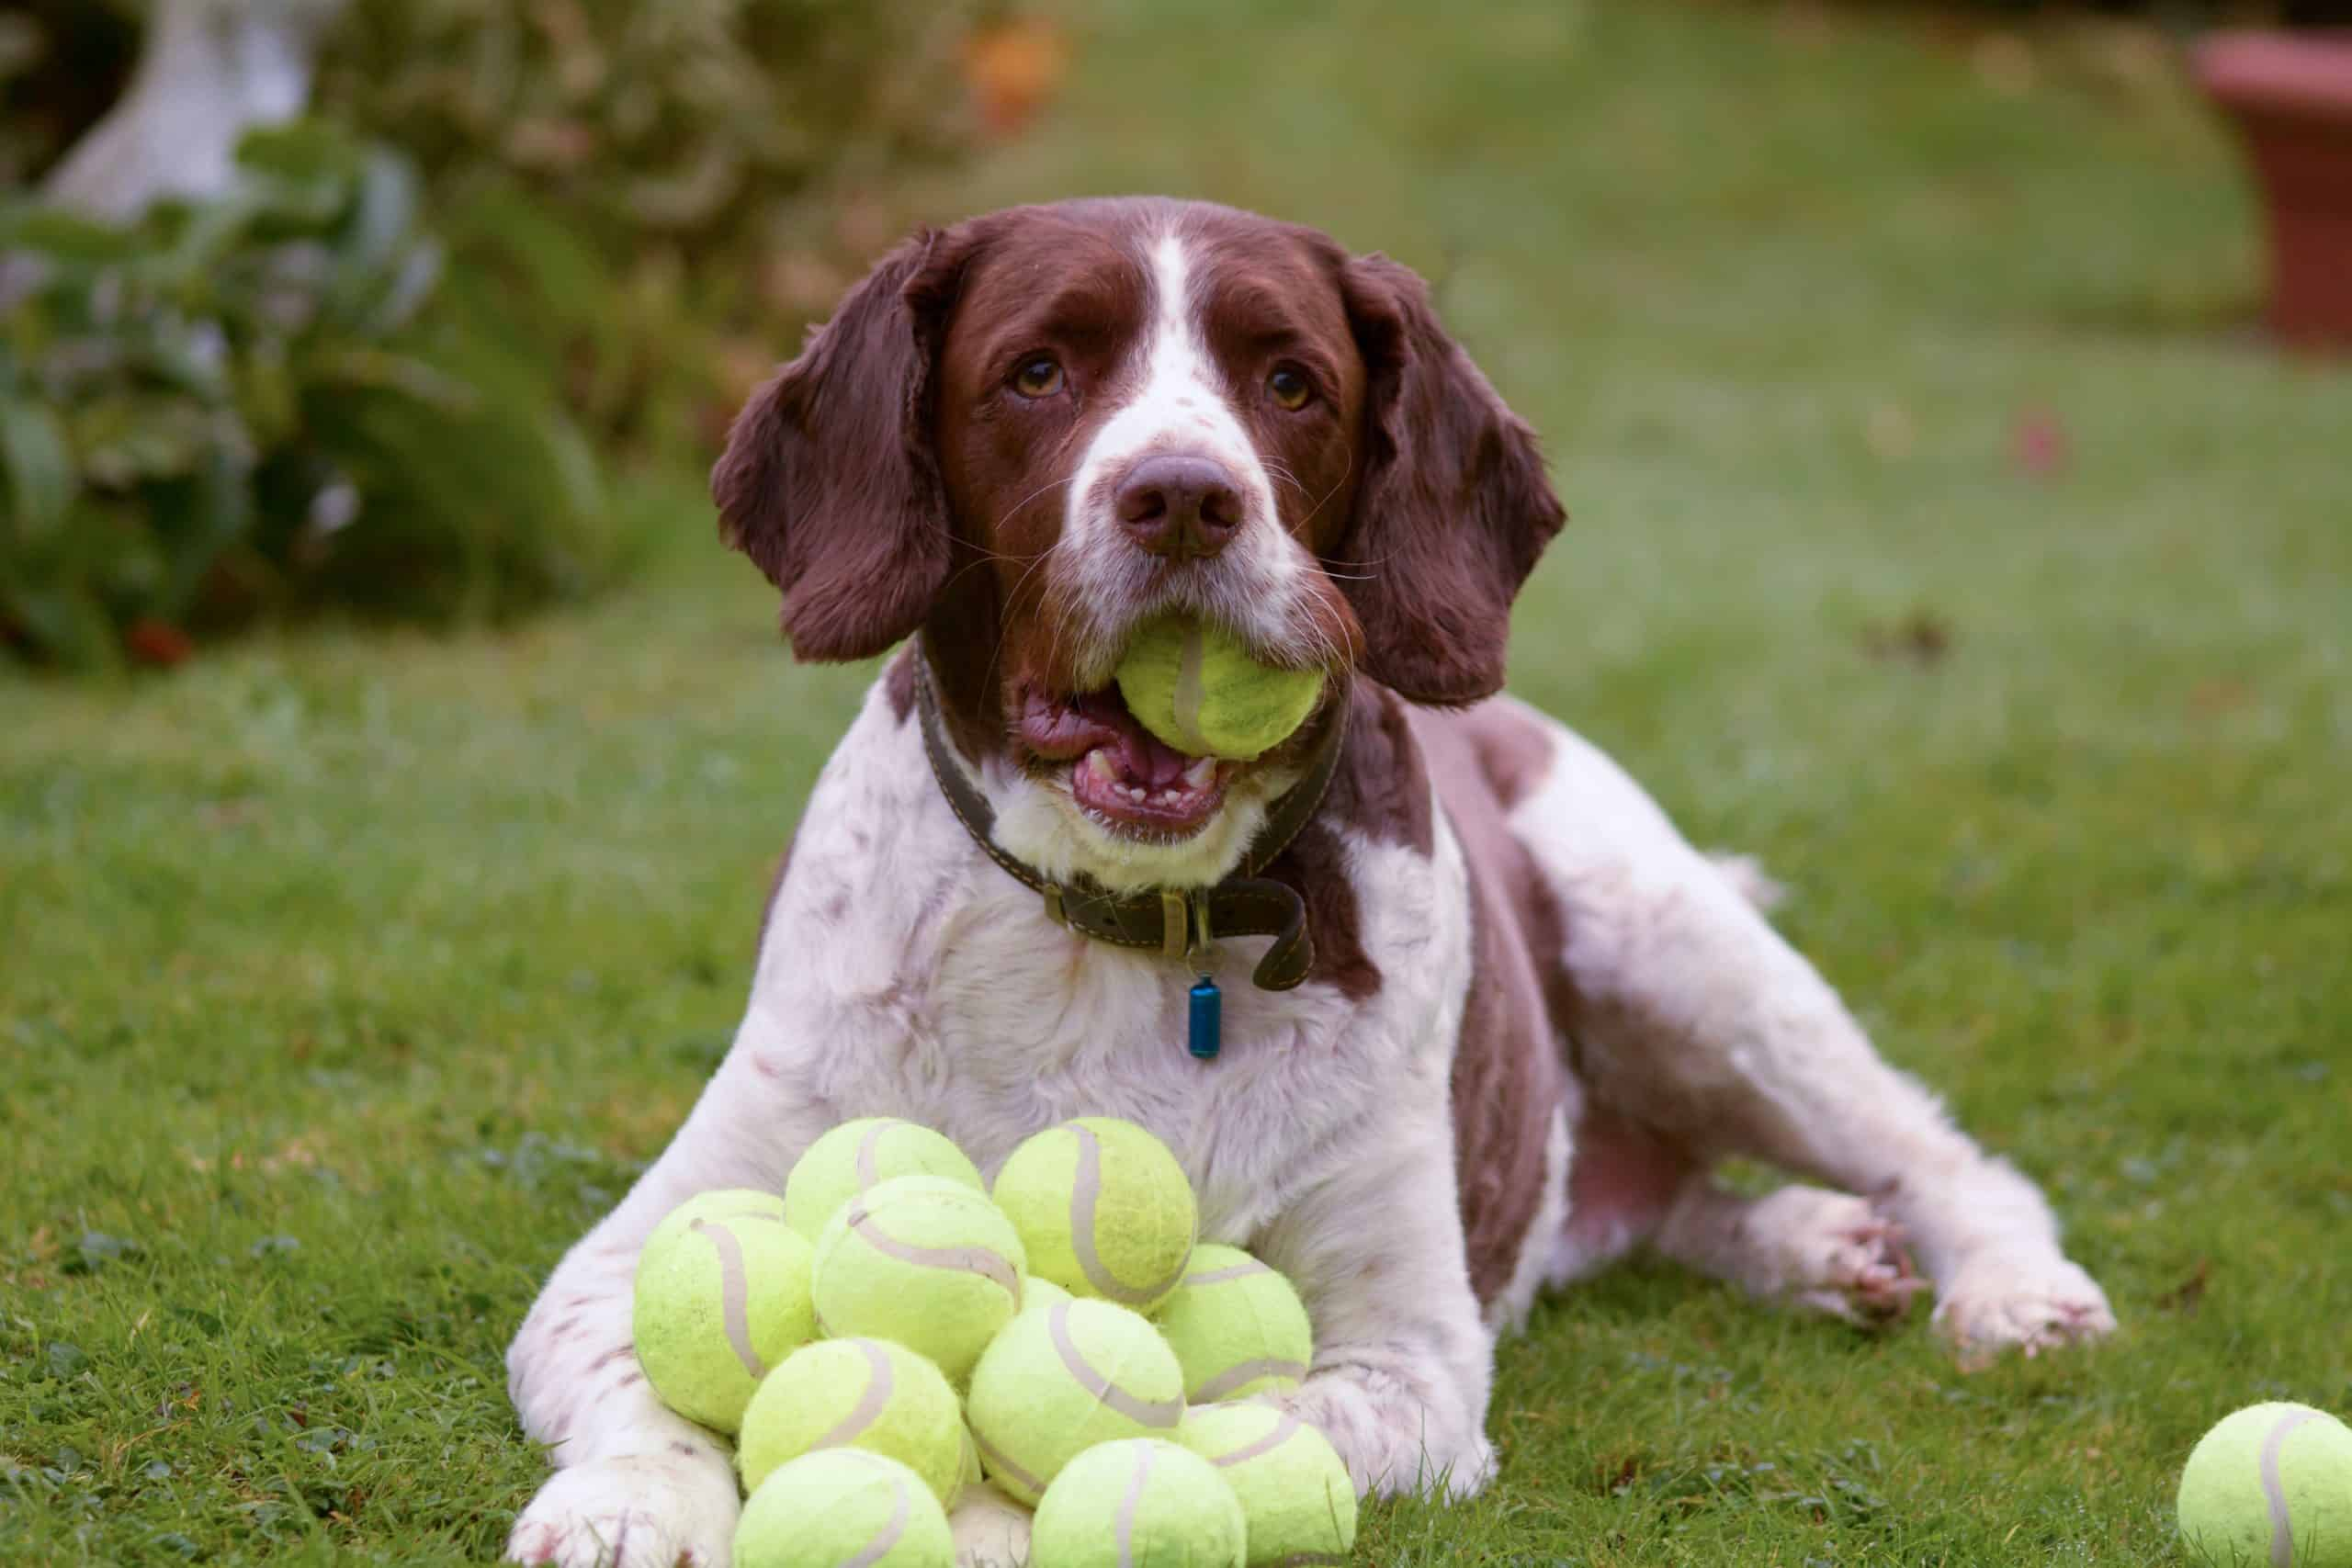 Springer spaniel plays with tennis balls. To reduce risks, don't leave tennis balls lying around the house where your pooch can get them at any time.